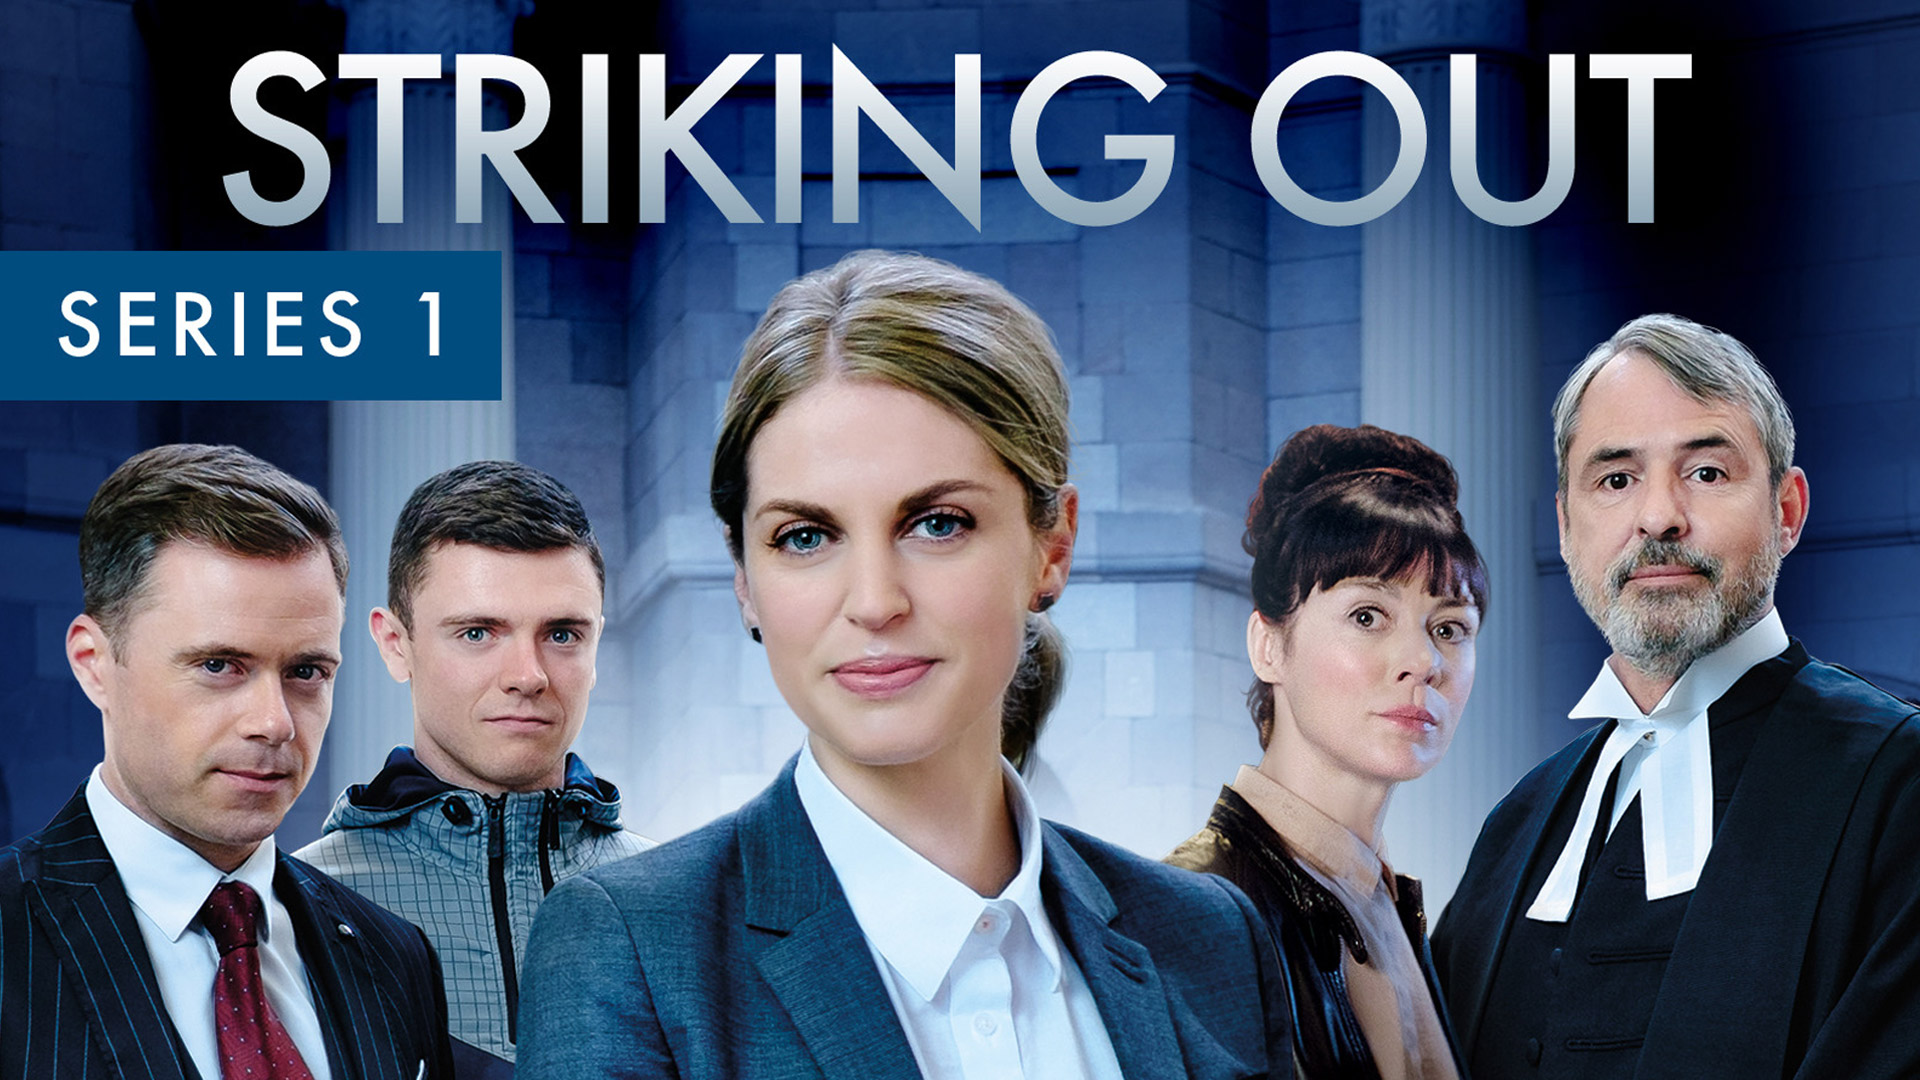 Striking Out - Series 1